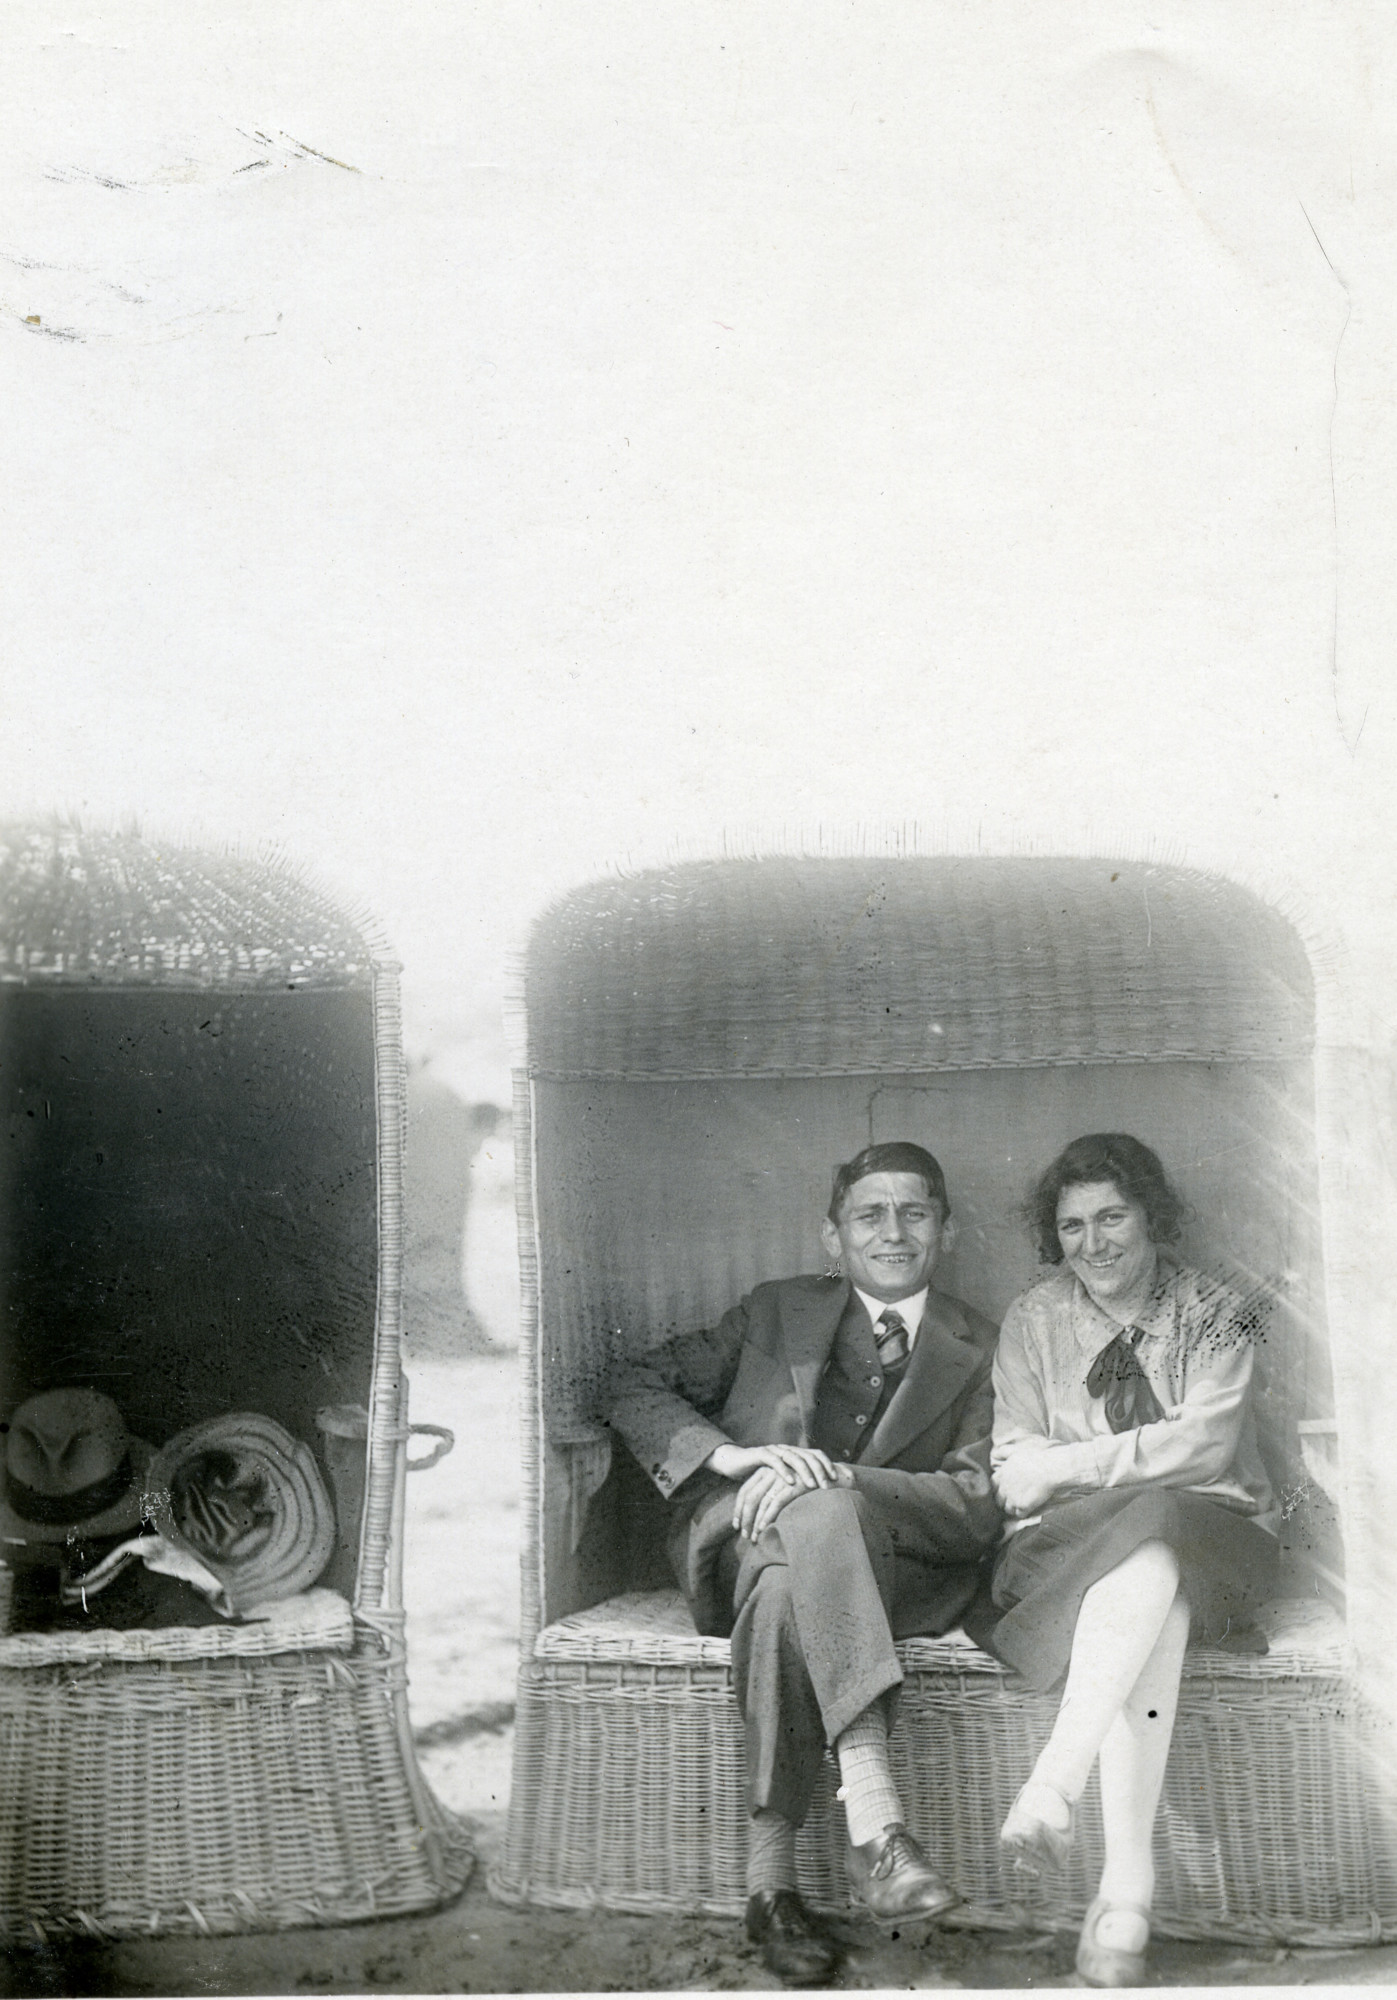 Wolf and Jusith Polak relax in a beach shelter  in Zandvoort.